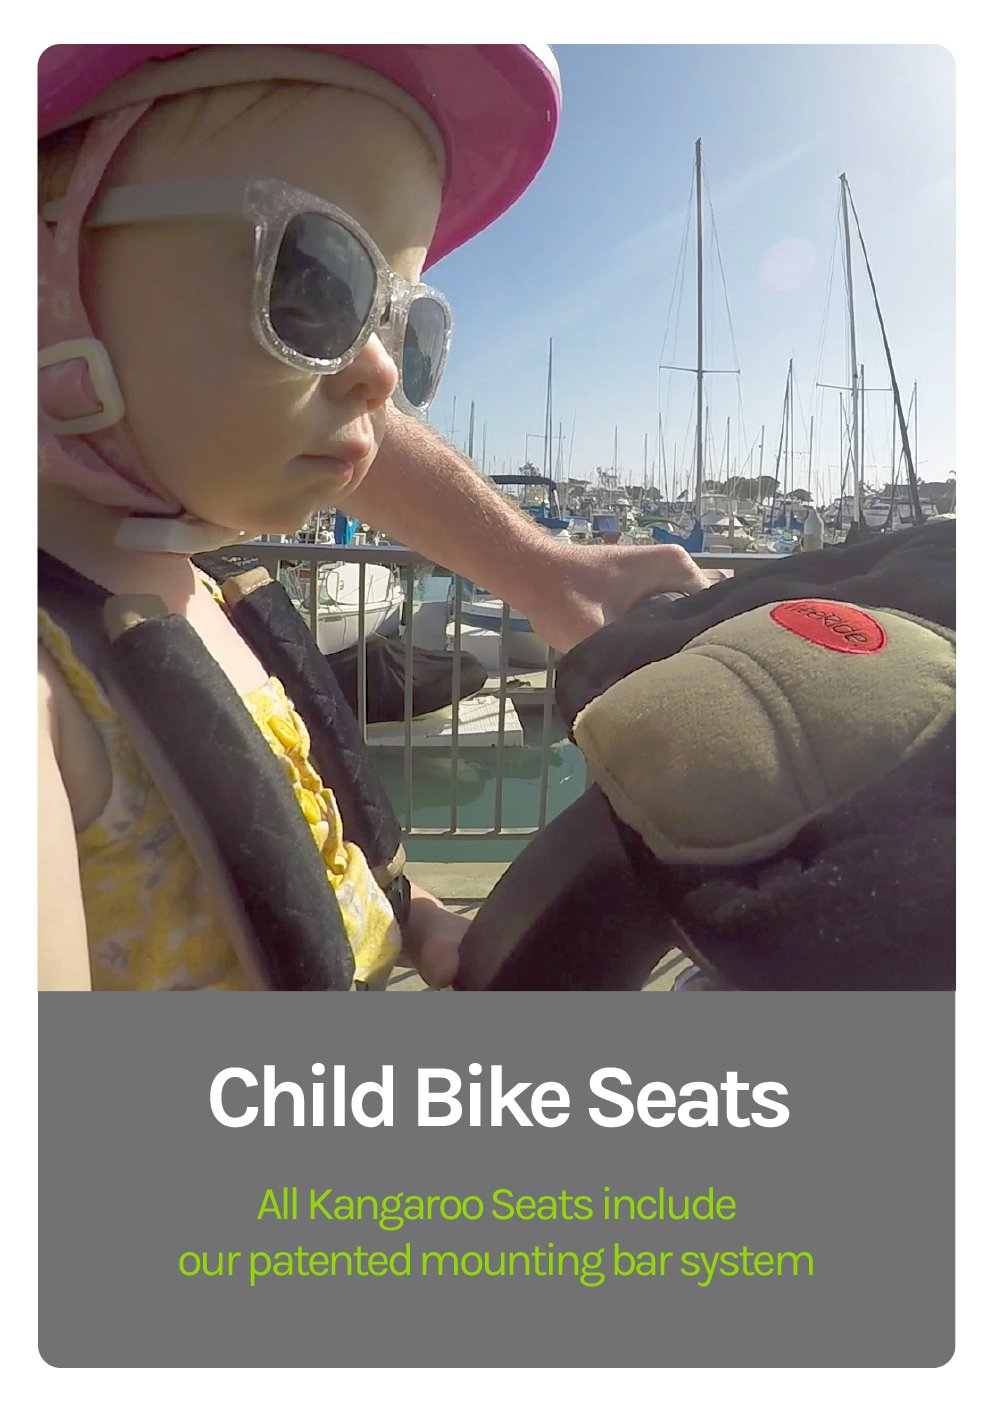 Child Bike Seats - All Kangaroo Seats include our patented mounting bar system - Cool litle girl in sunglasses with a closeup of her weeride pad, biking with her dad on a boat dock pier